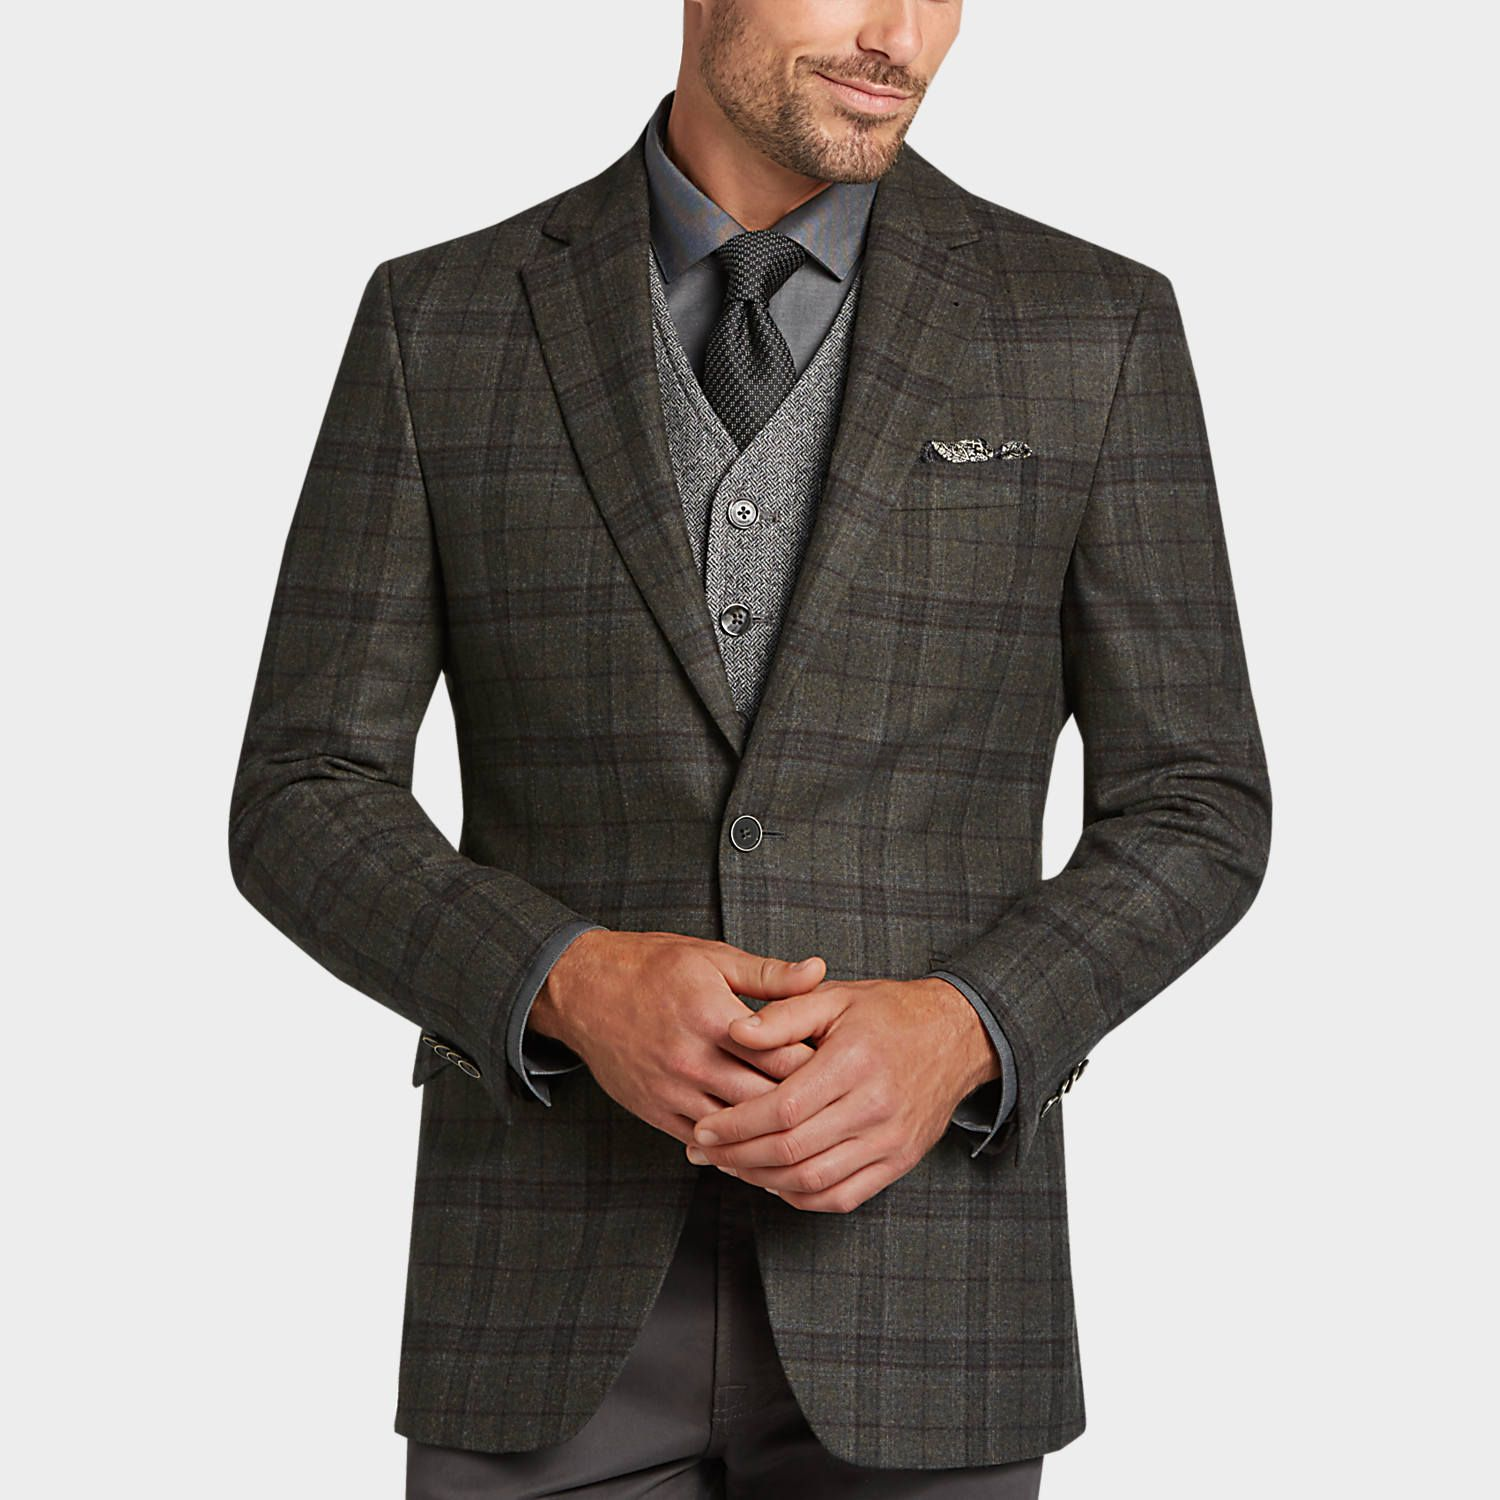 400 Buy a Joseph Abboud Tan Houndstooth Slim Fit Sport